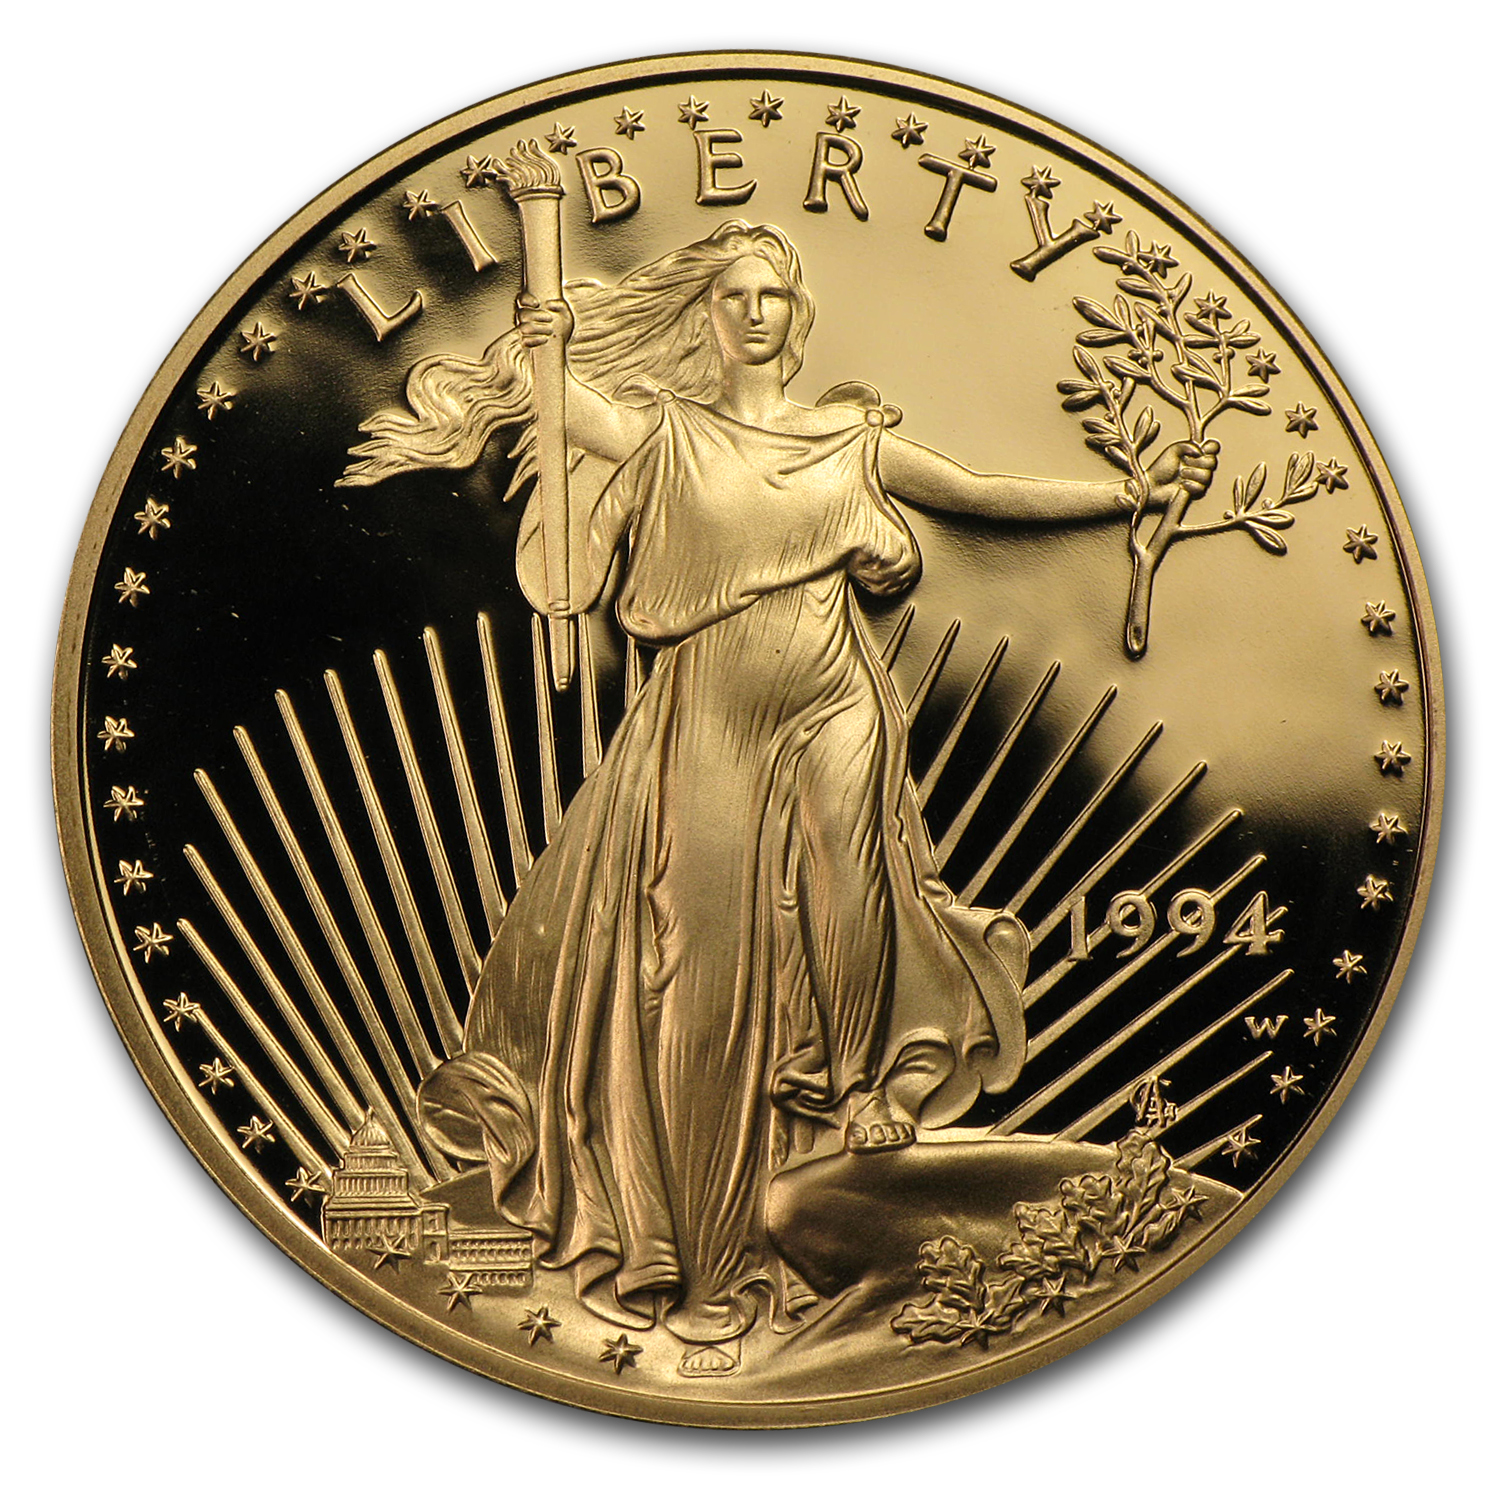 1 oz Proof Gold American Eagle (Capsule Only)